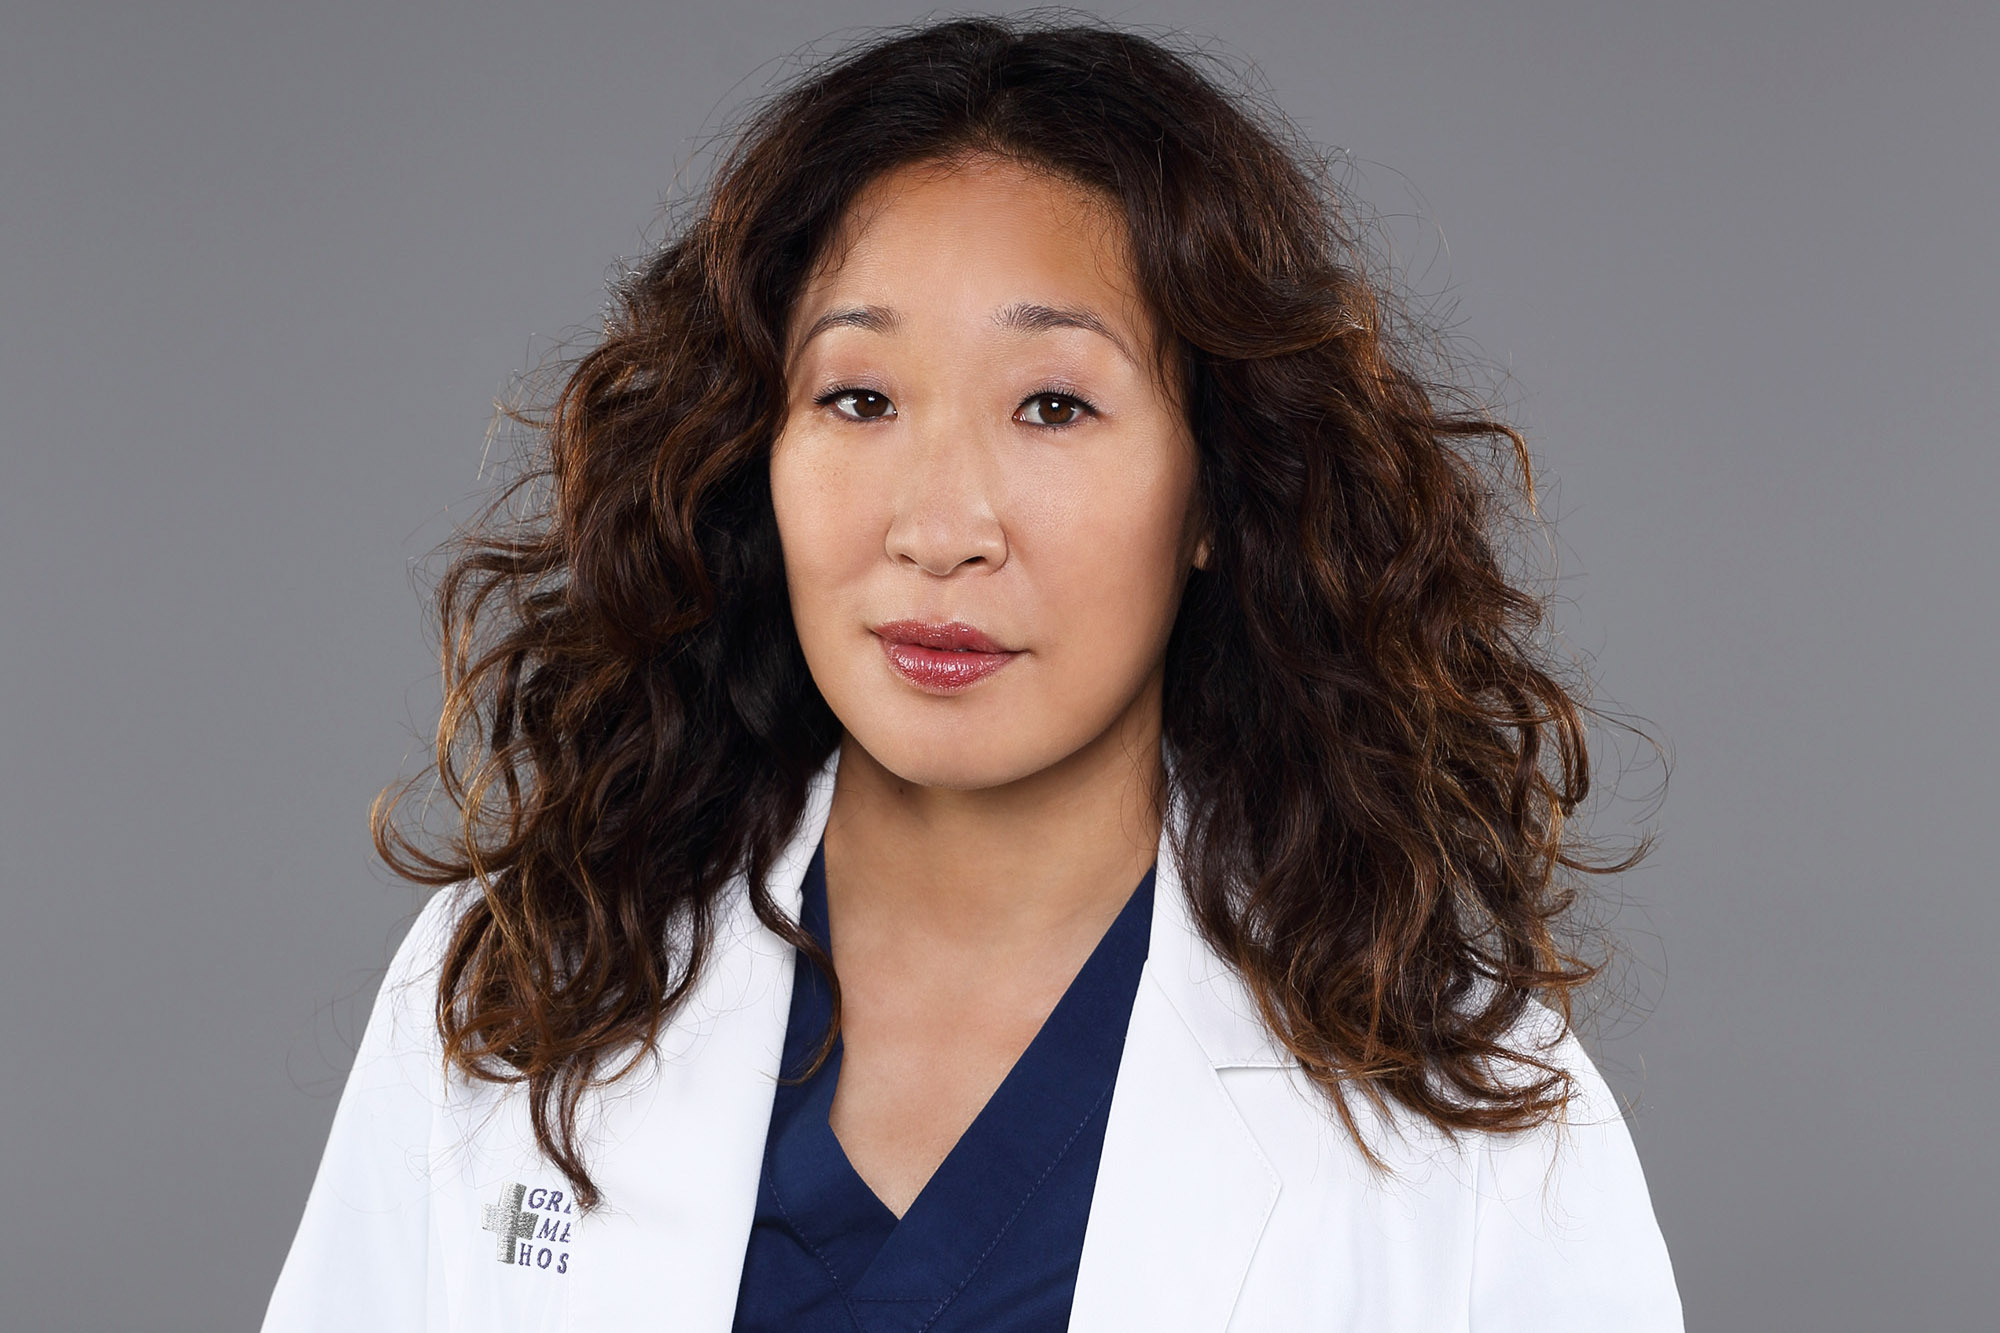 sandra oh husbandsandra oh instagram, sandra oh boyfriend, sandra oh husband, sandra oh grey's anatomy, sandra oh married, sandra oh family, sandra oh movies, sandra oh 2016, sandra oh grey's anatomy return, sandra oh american crime, sandra oh news, sandra oh net worth, sandra oh back to grey's anatomy, sandra oh wikipedia, sandra oh golden globe, sandra oh anne heche, sandra oh returns to grey's anatomy, sandra oh wiki, sandra oh back on grey's, sandra oh ellen